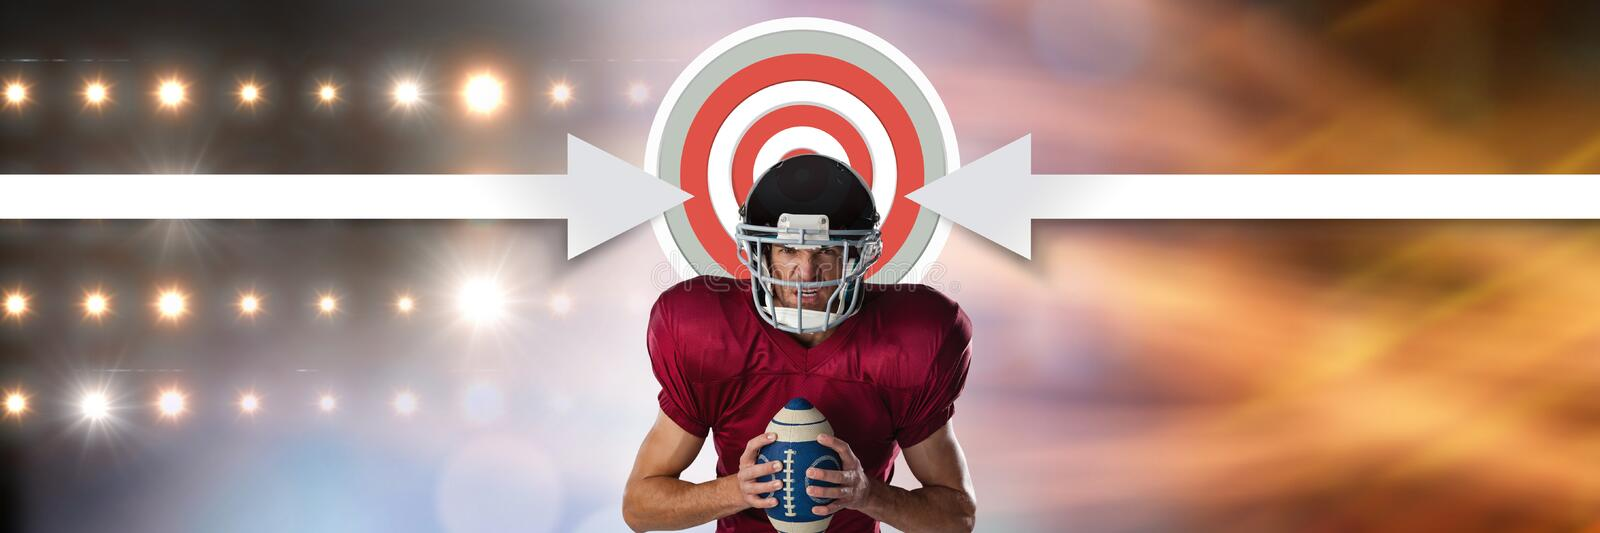 American football player with stadium transition and arrows pointing to target vector illustration